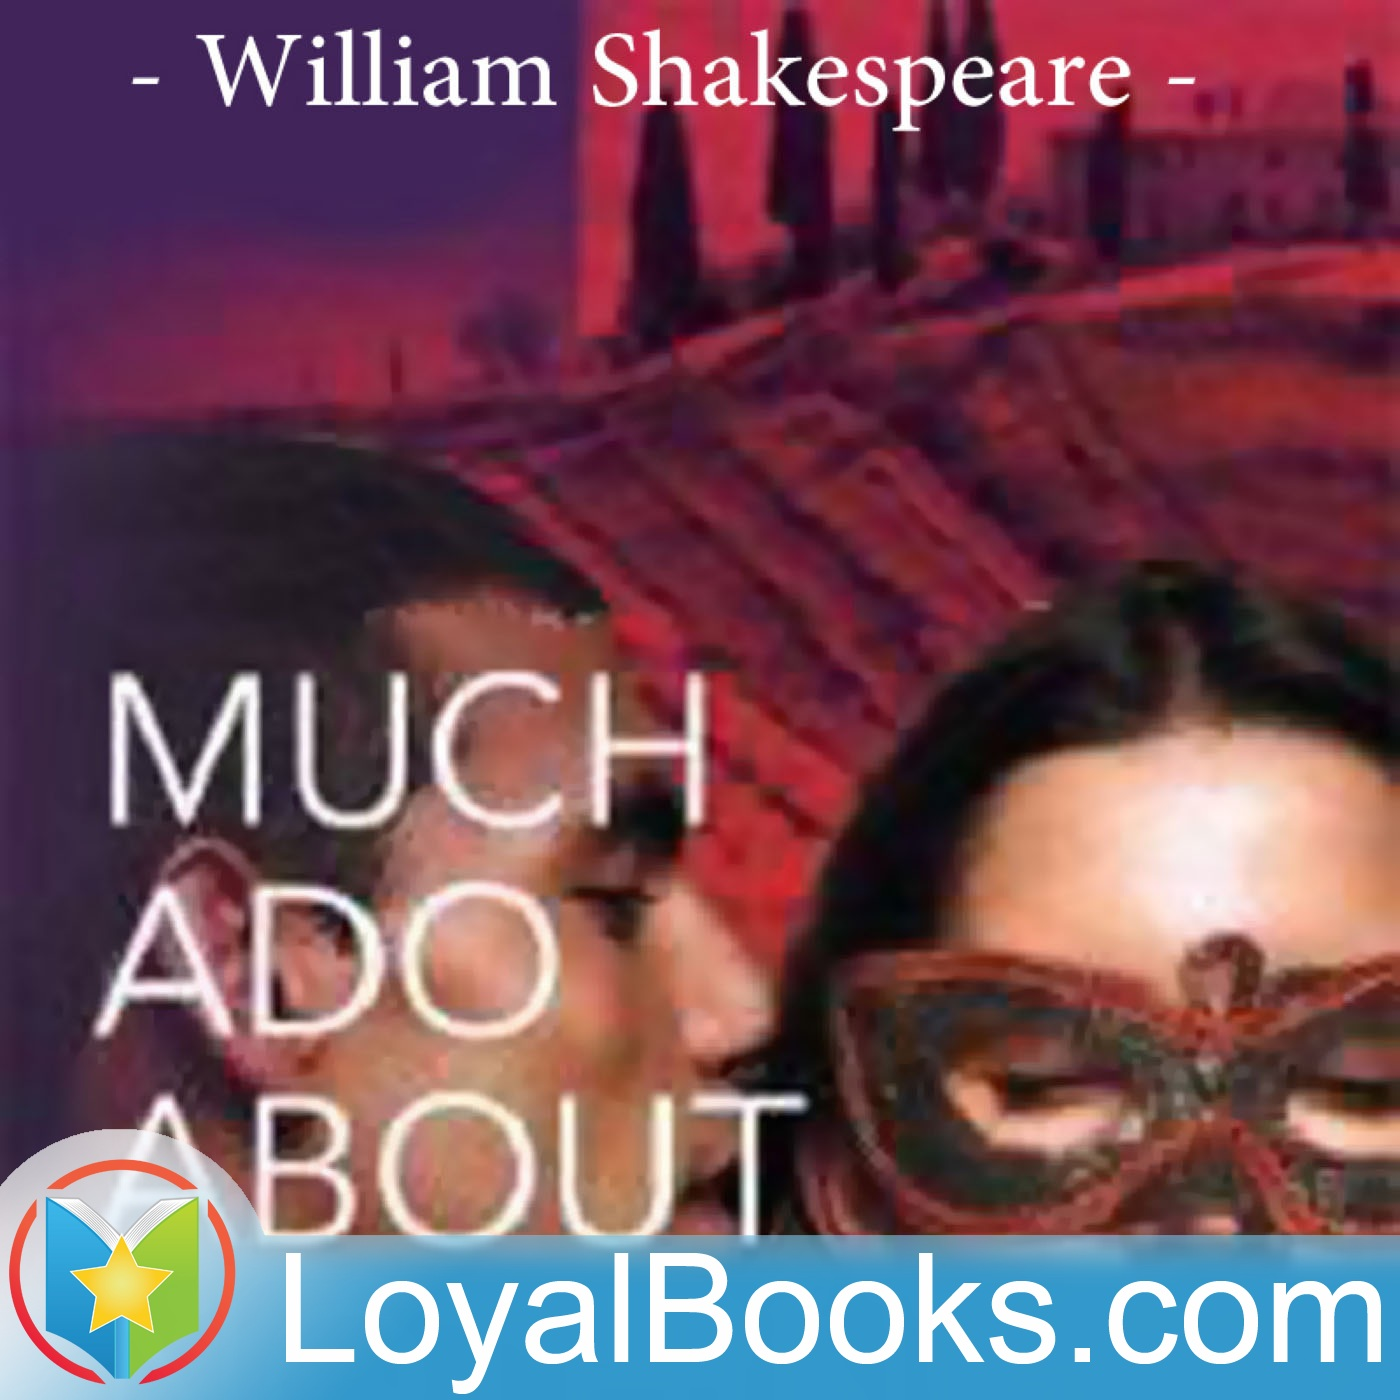 <![CDATA[Much Ado About Nothing by William Shakespeare]]>